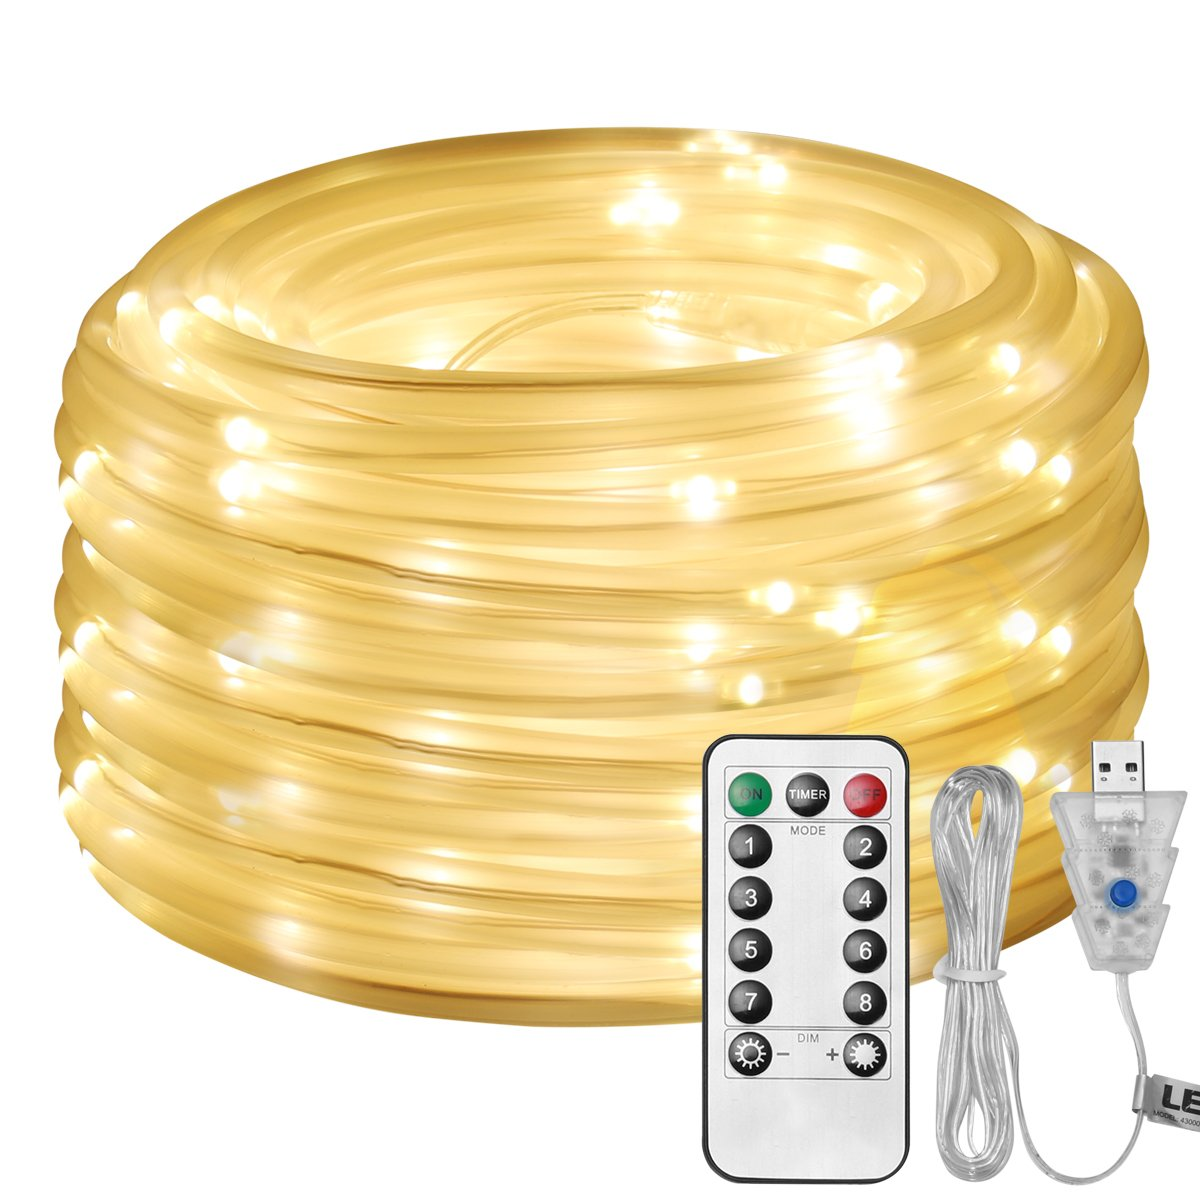 LE 33ft 100 LED Dimmable Rope Lights, USB Powered Waterproof Rope Lighting, 8 Lighting Modes/Timer, Indoor Outdoor Ambiance Lighting Ideal for Patio Garden Party Wedding Holiday Decor (Warm White) Lighting EVER